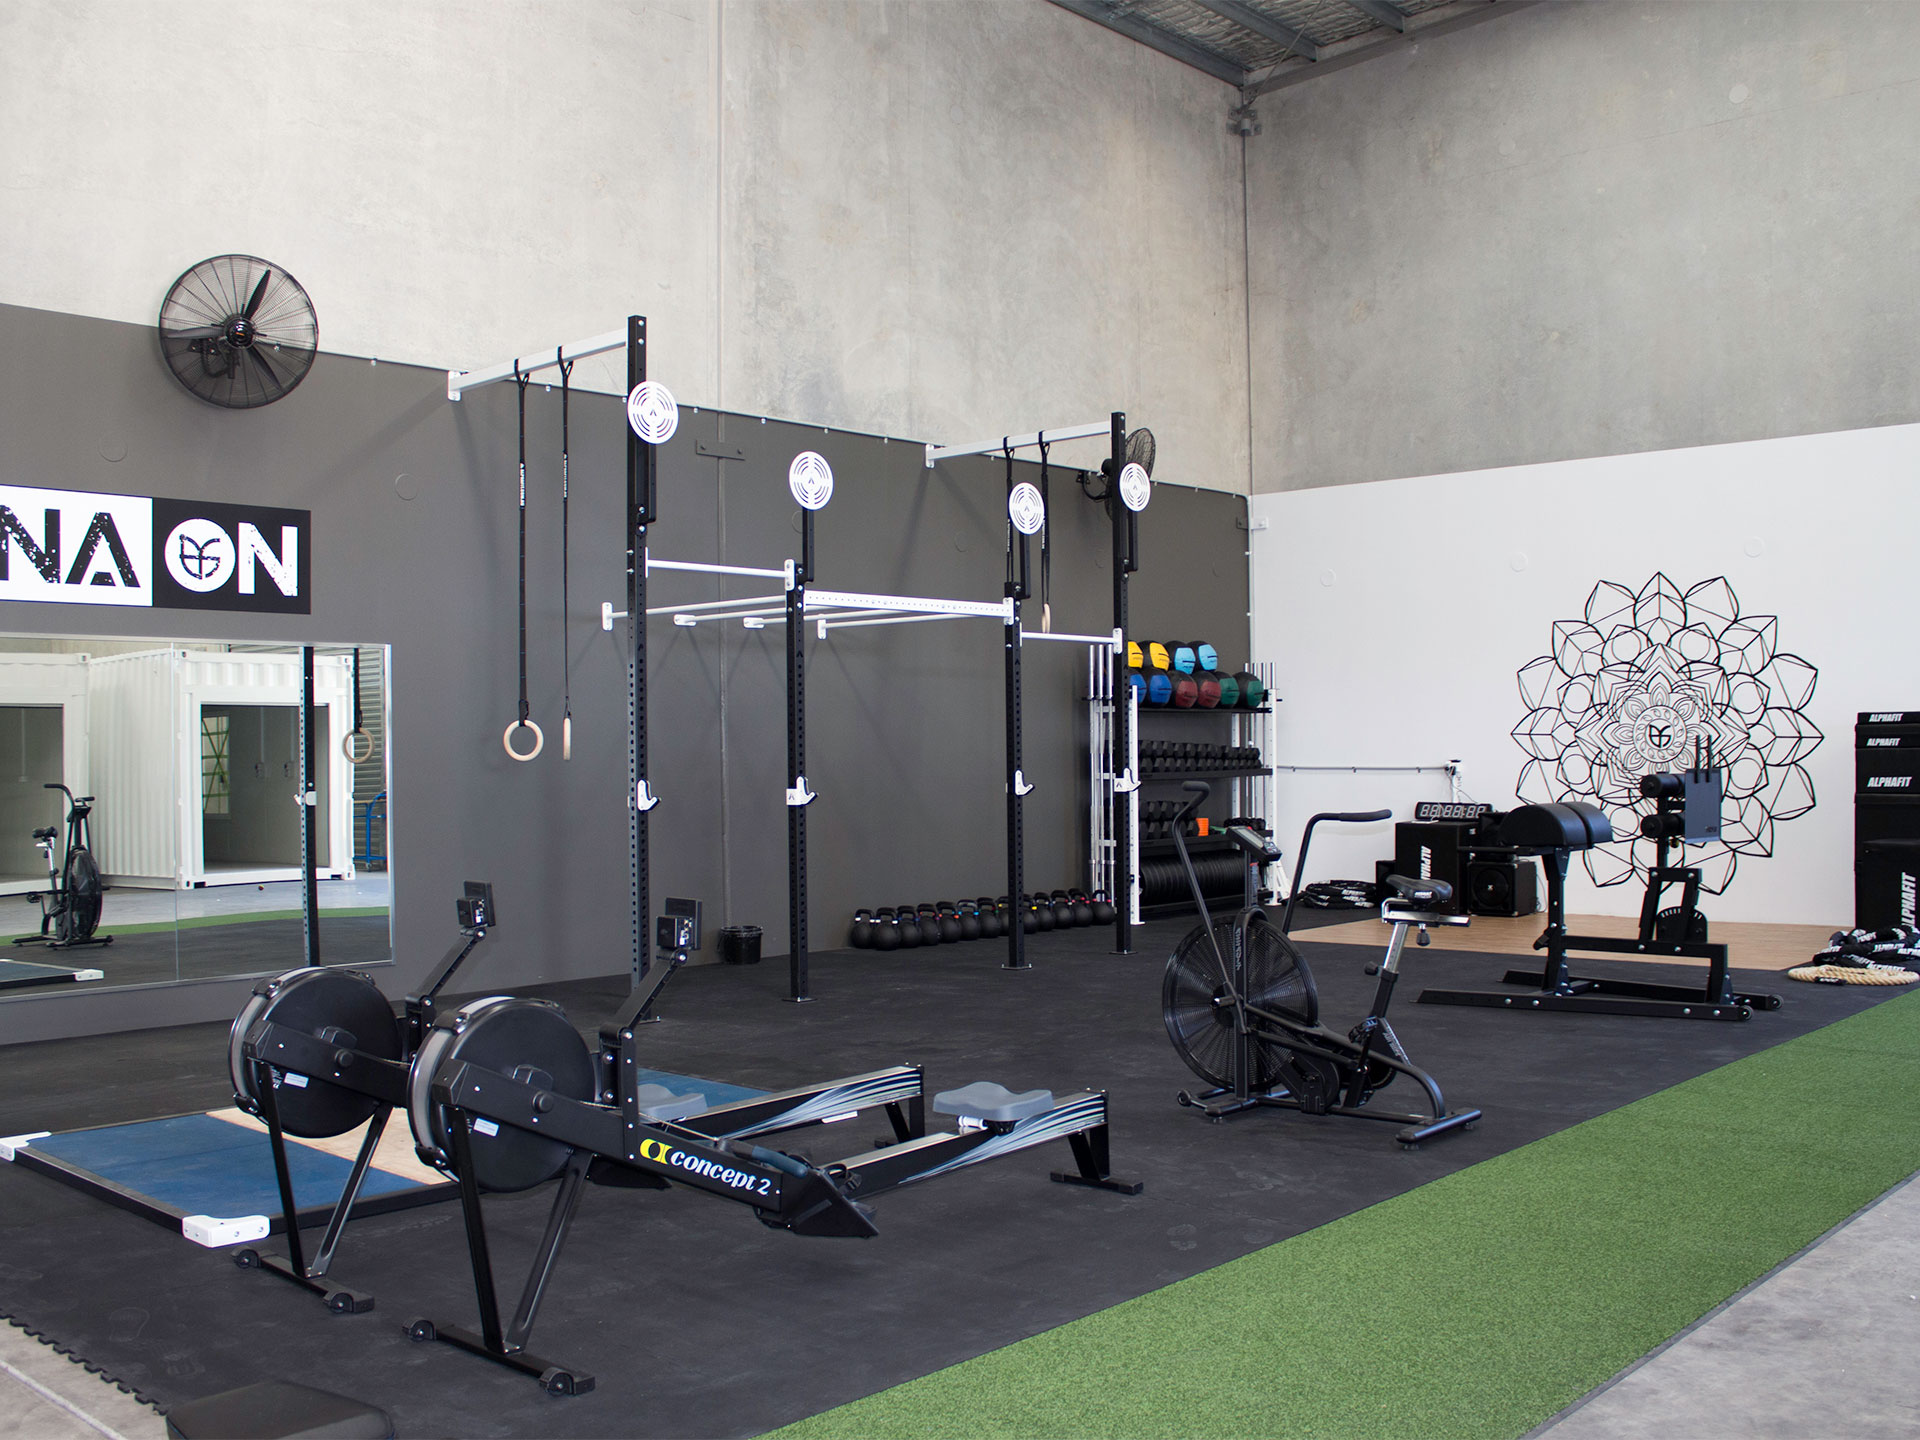 Prana ON Protein Gym Fitout